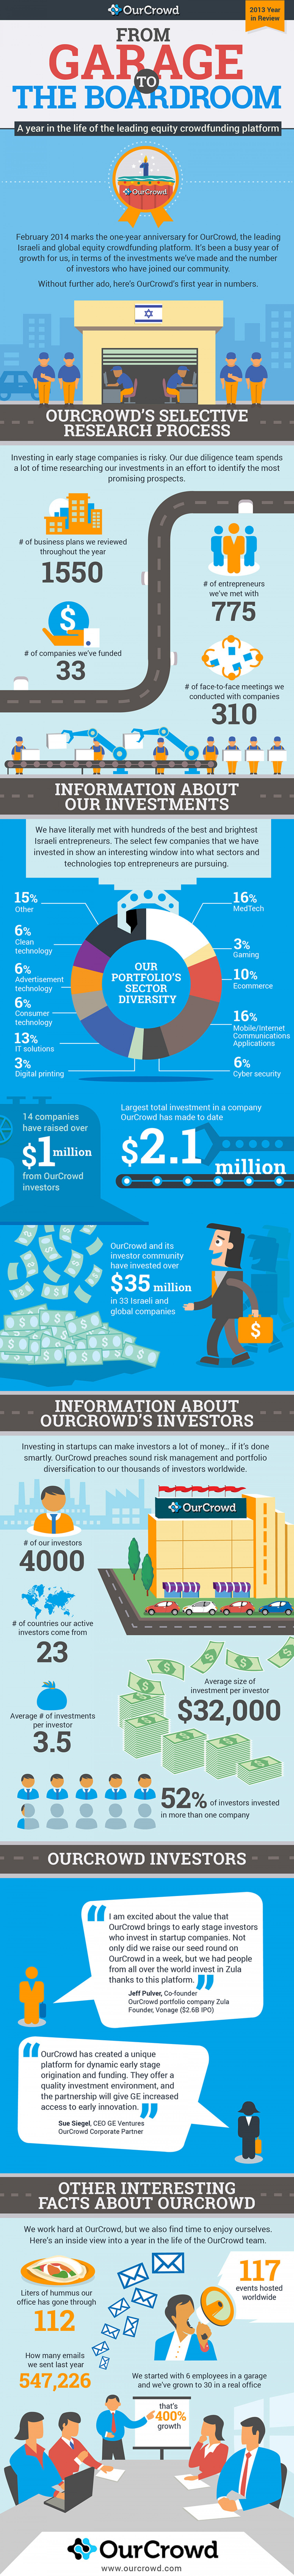 From Garage to the boardroom Infographic